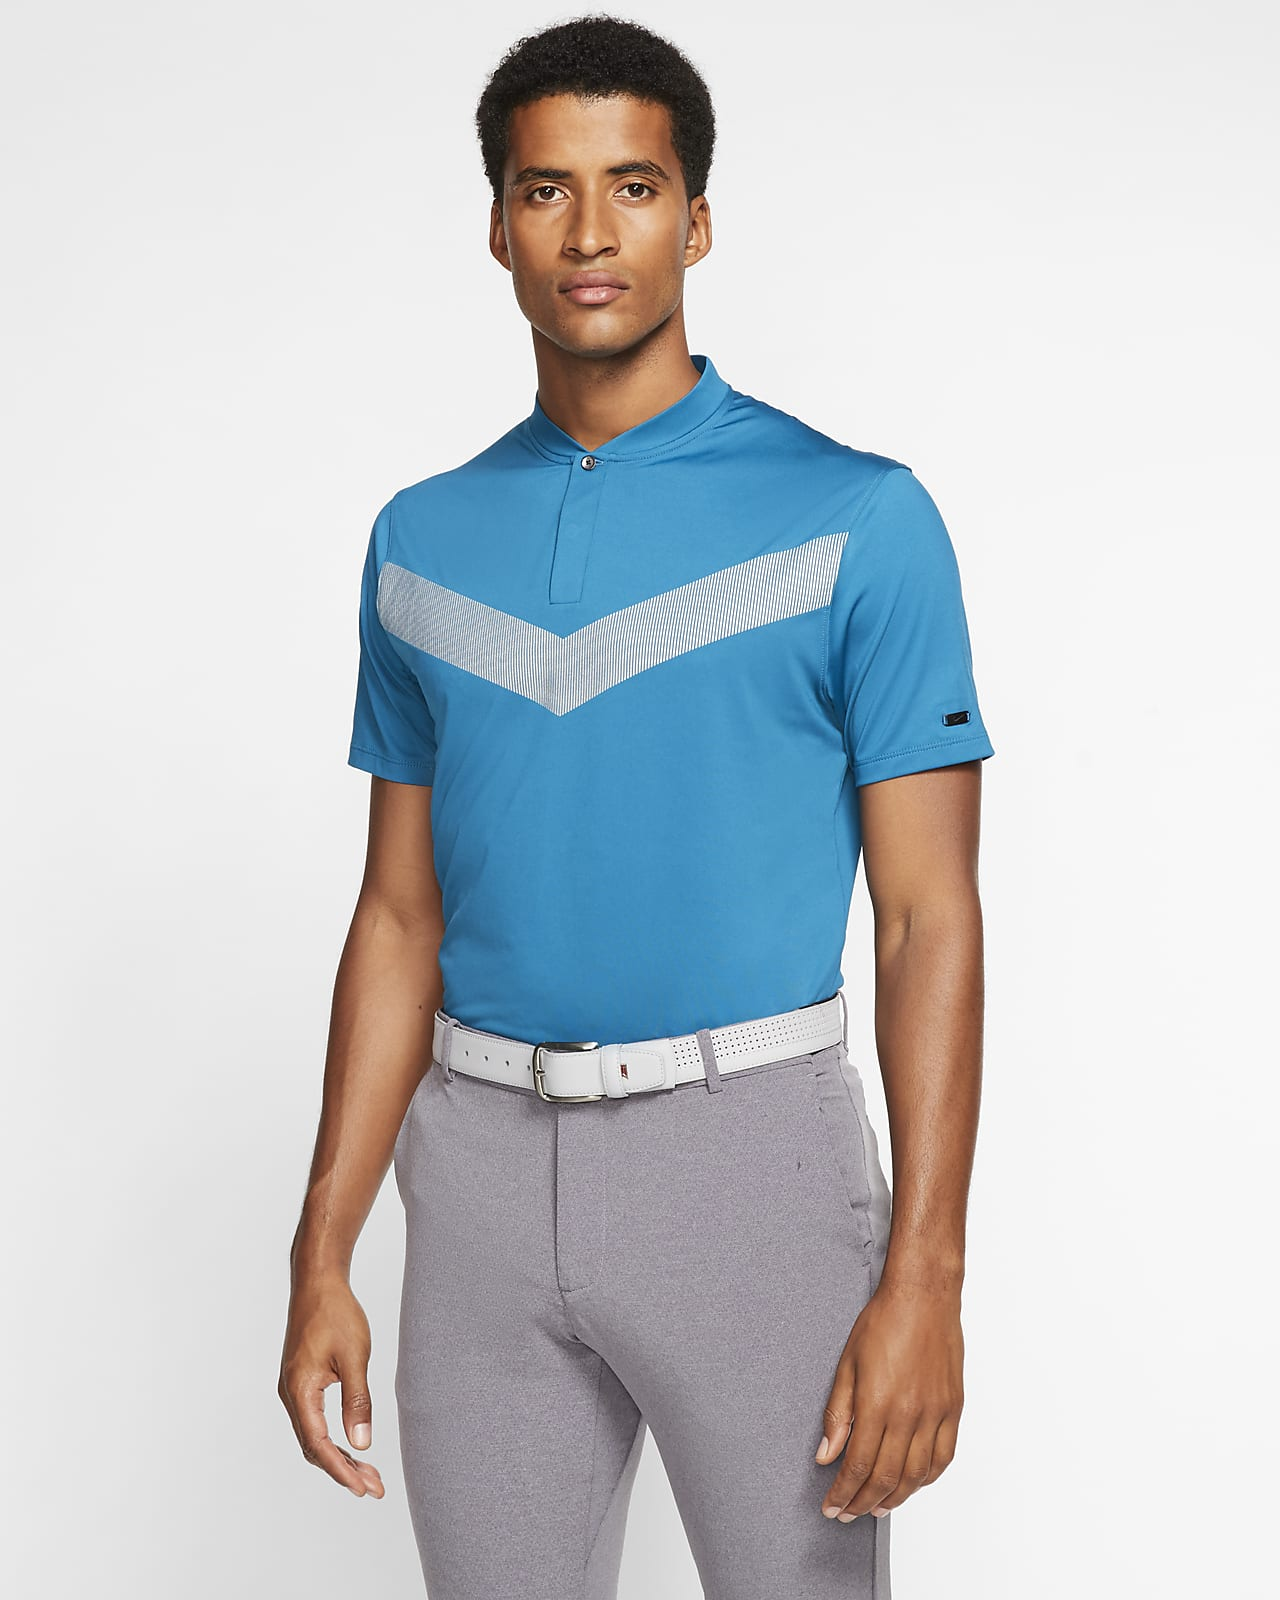 Polo de golf para hombre Nike Dri-FIT Tiger Woods Vapor